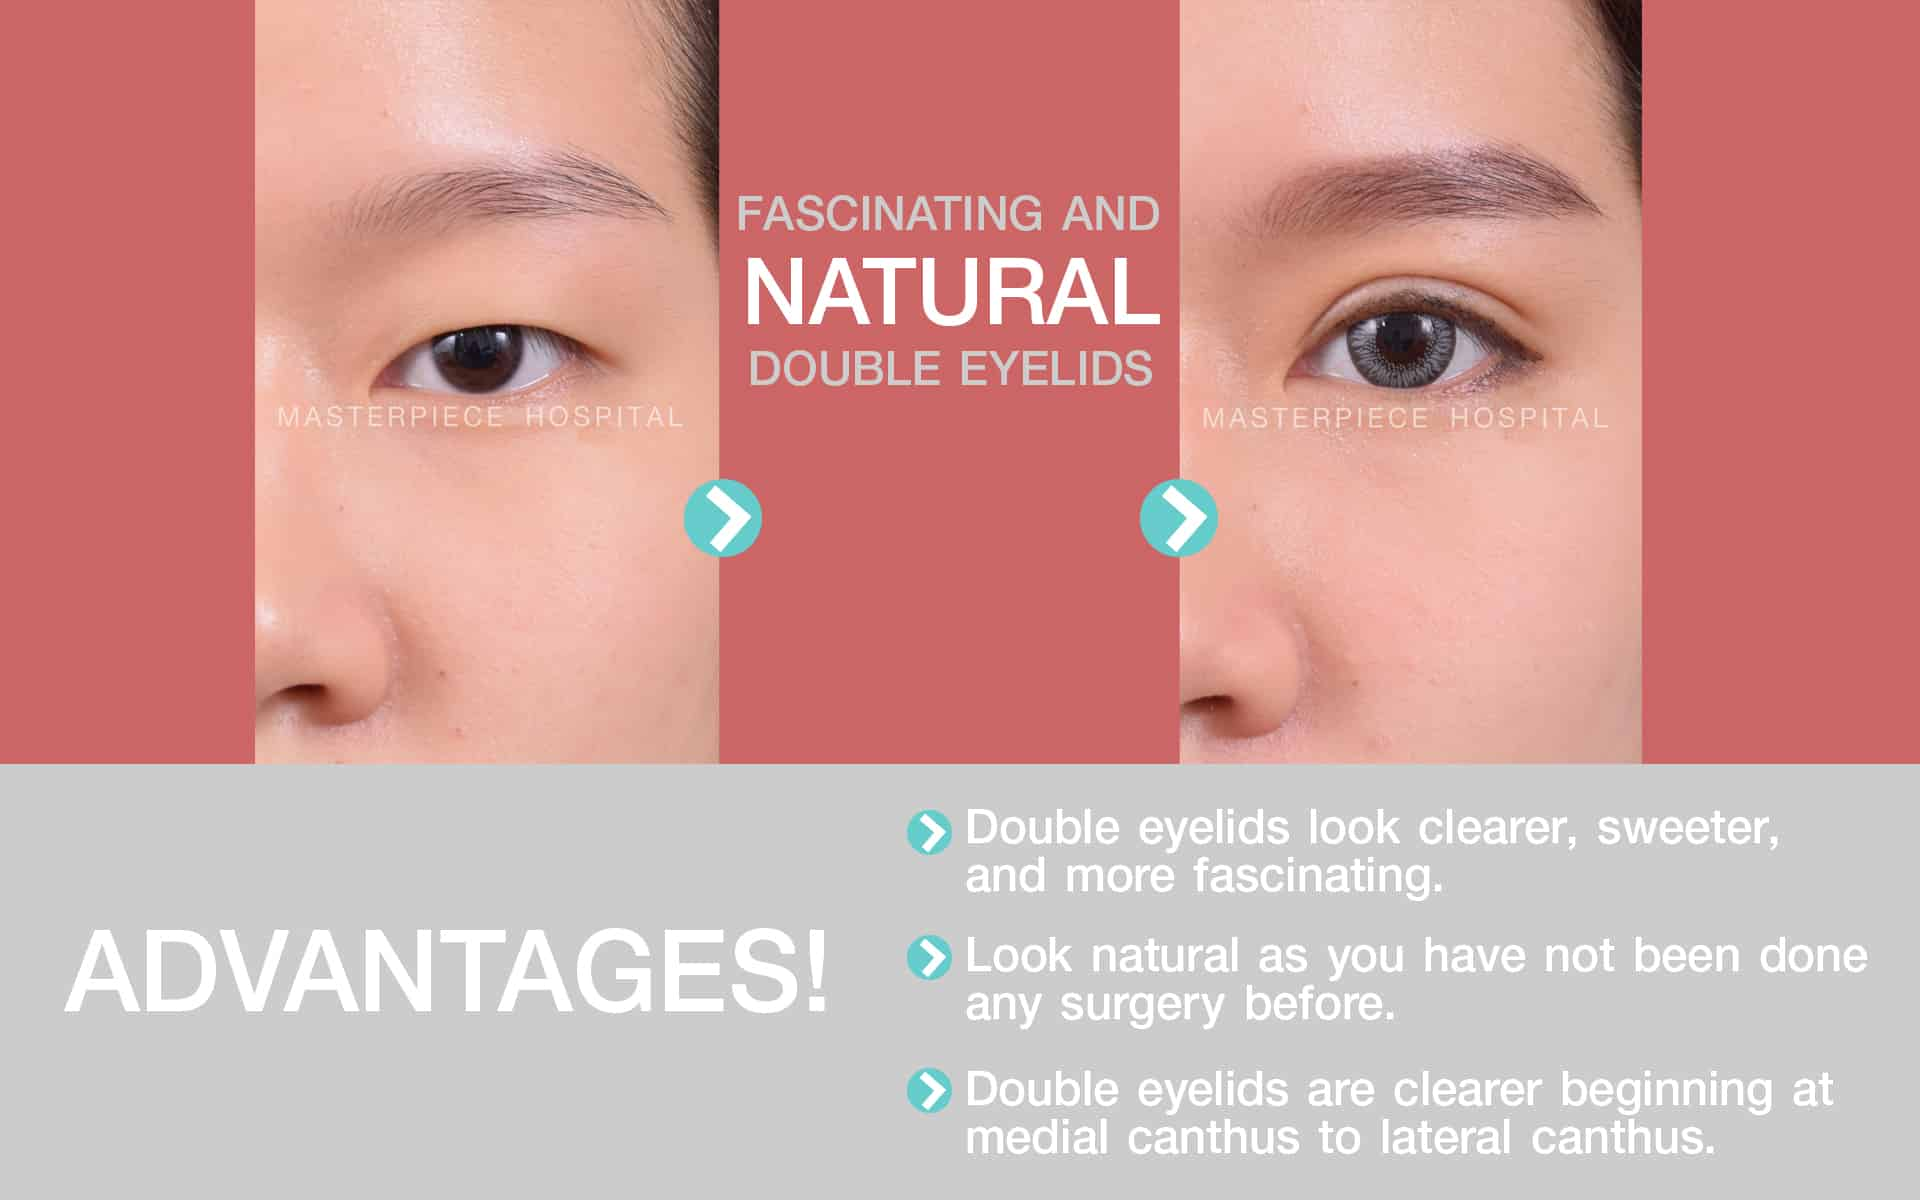 Advantages of this procedure Eye